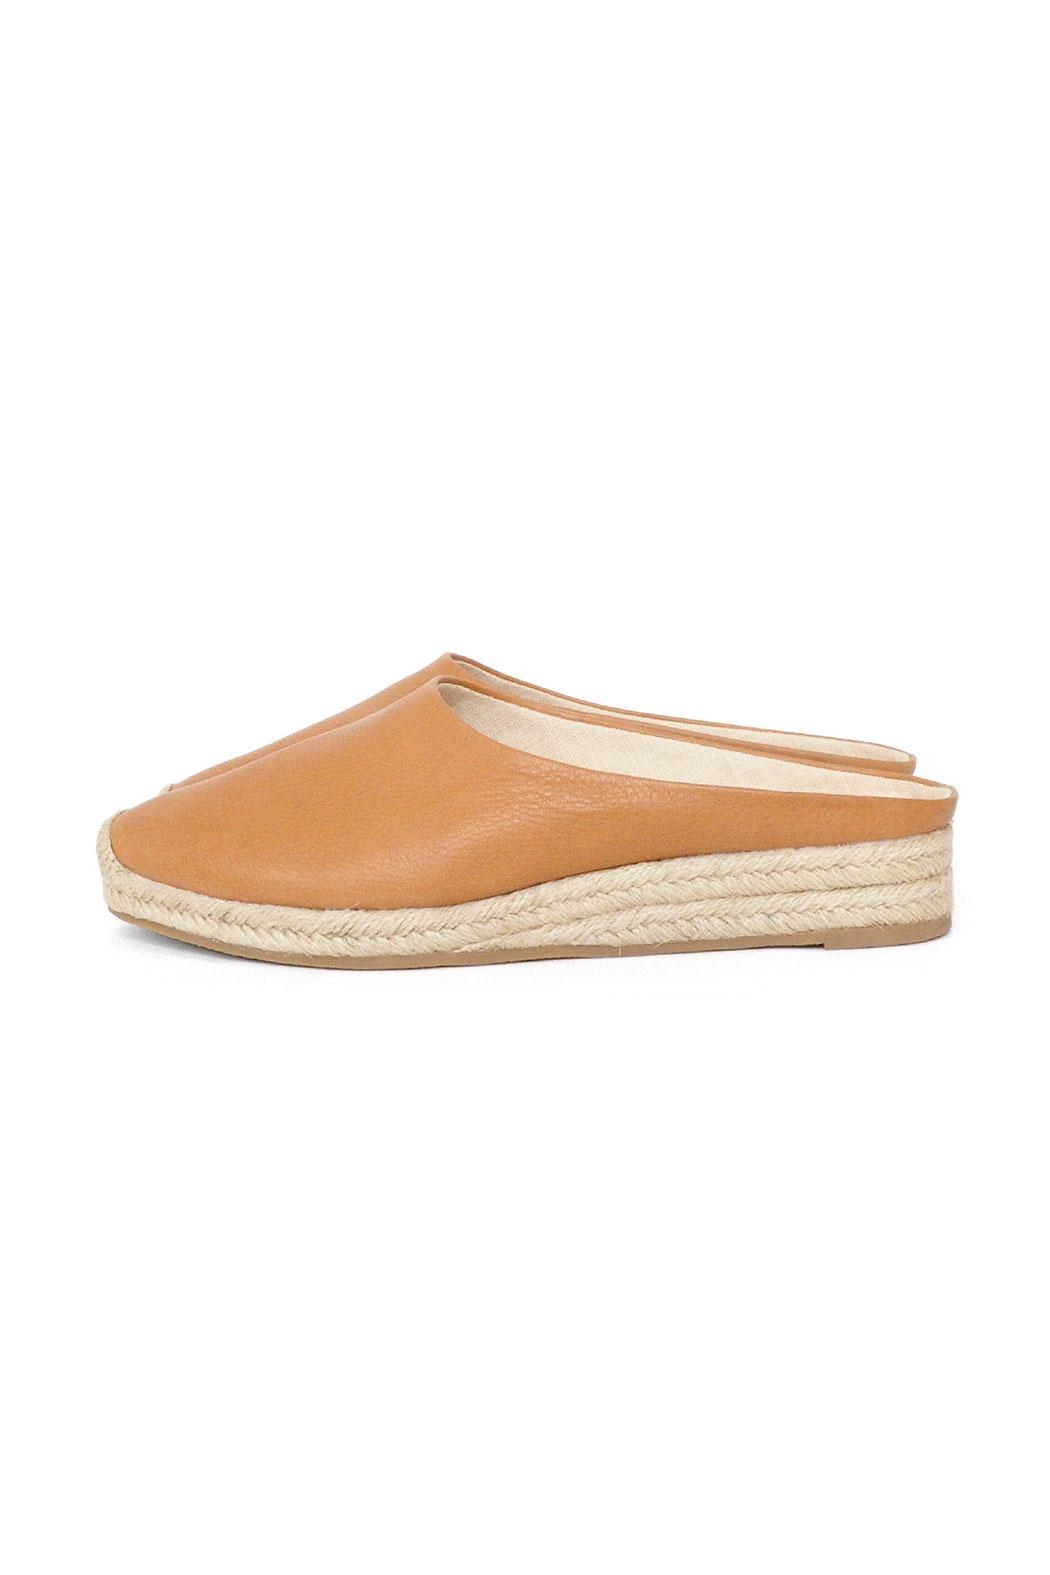 Dolce Vita Tan Leather Espadrilles - Front Cropped Image